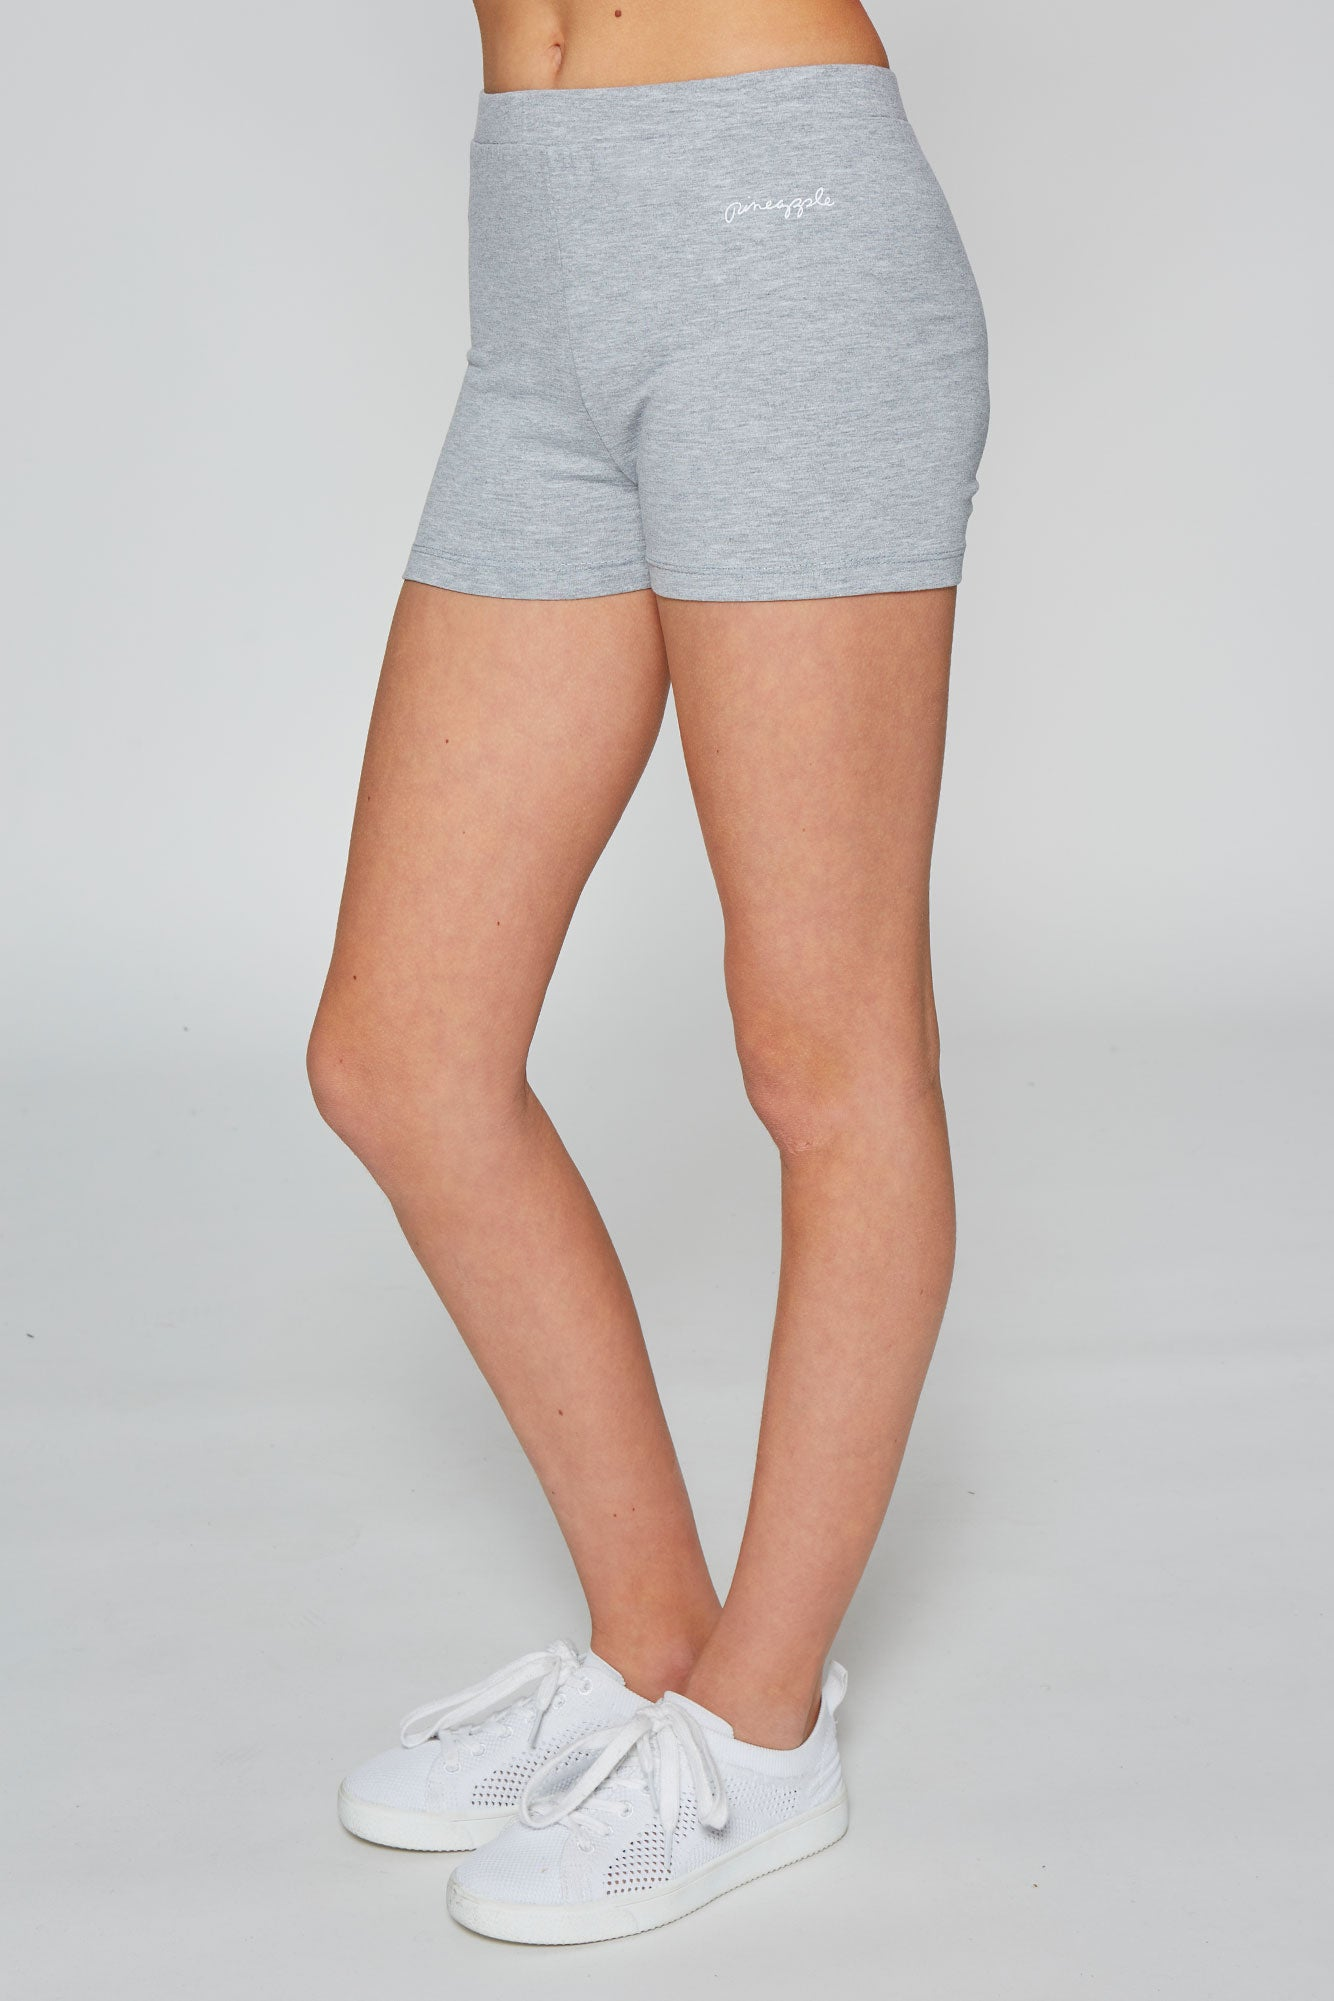 Pineapple Dance Girls' Grey Marl hot pants PS0032CA3